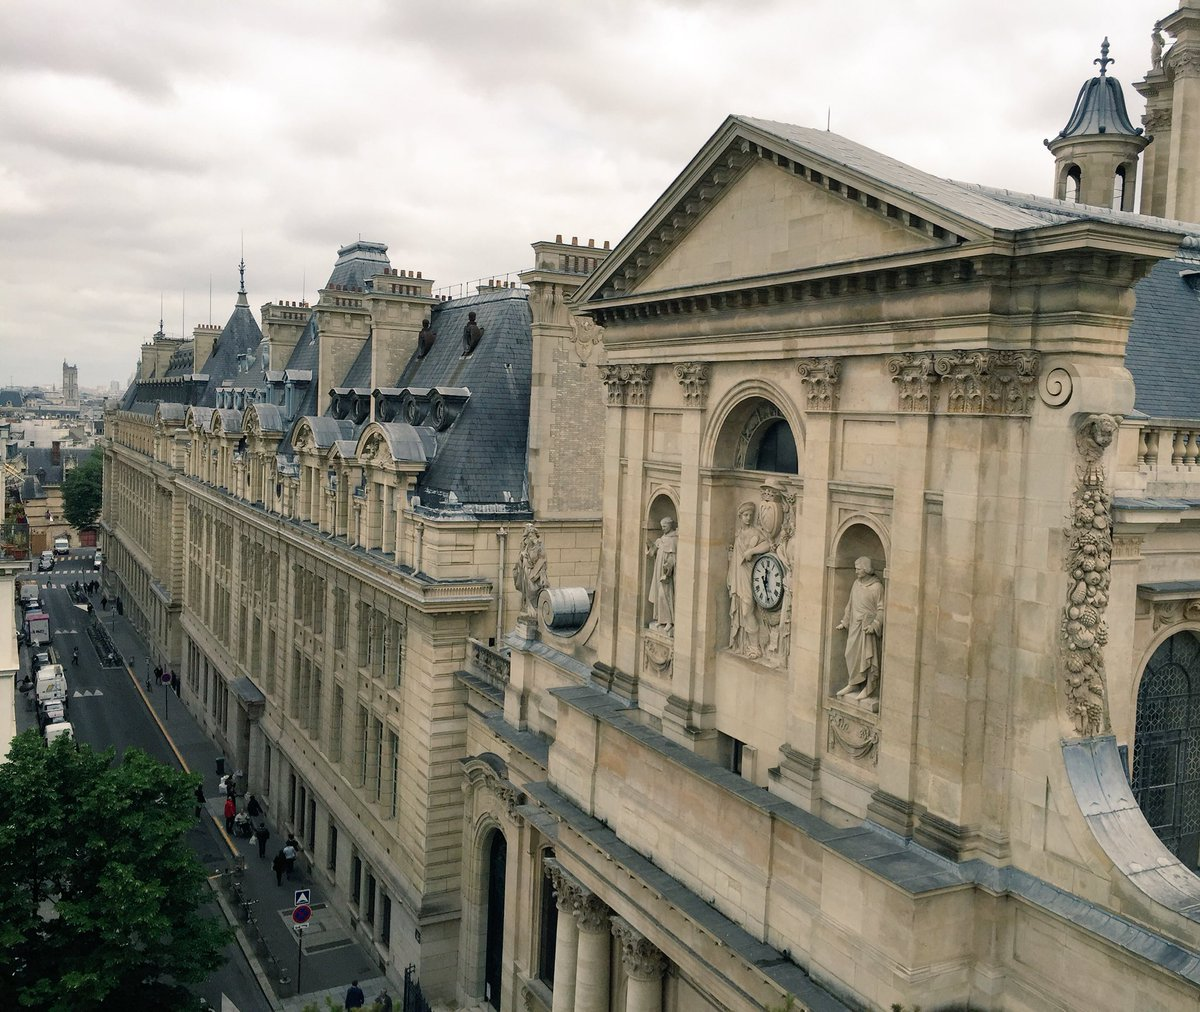 The view from my suite in #Paris  #LaSorbonne  <br>http://pic.twitter.com/kait5fvzmt